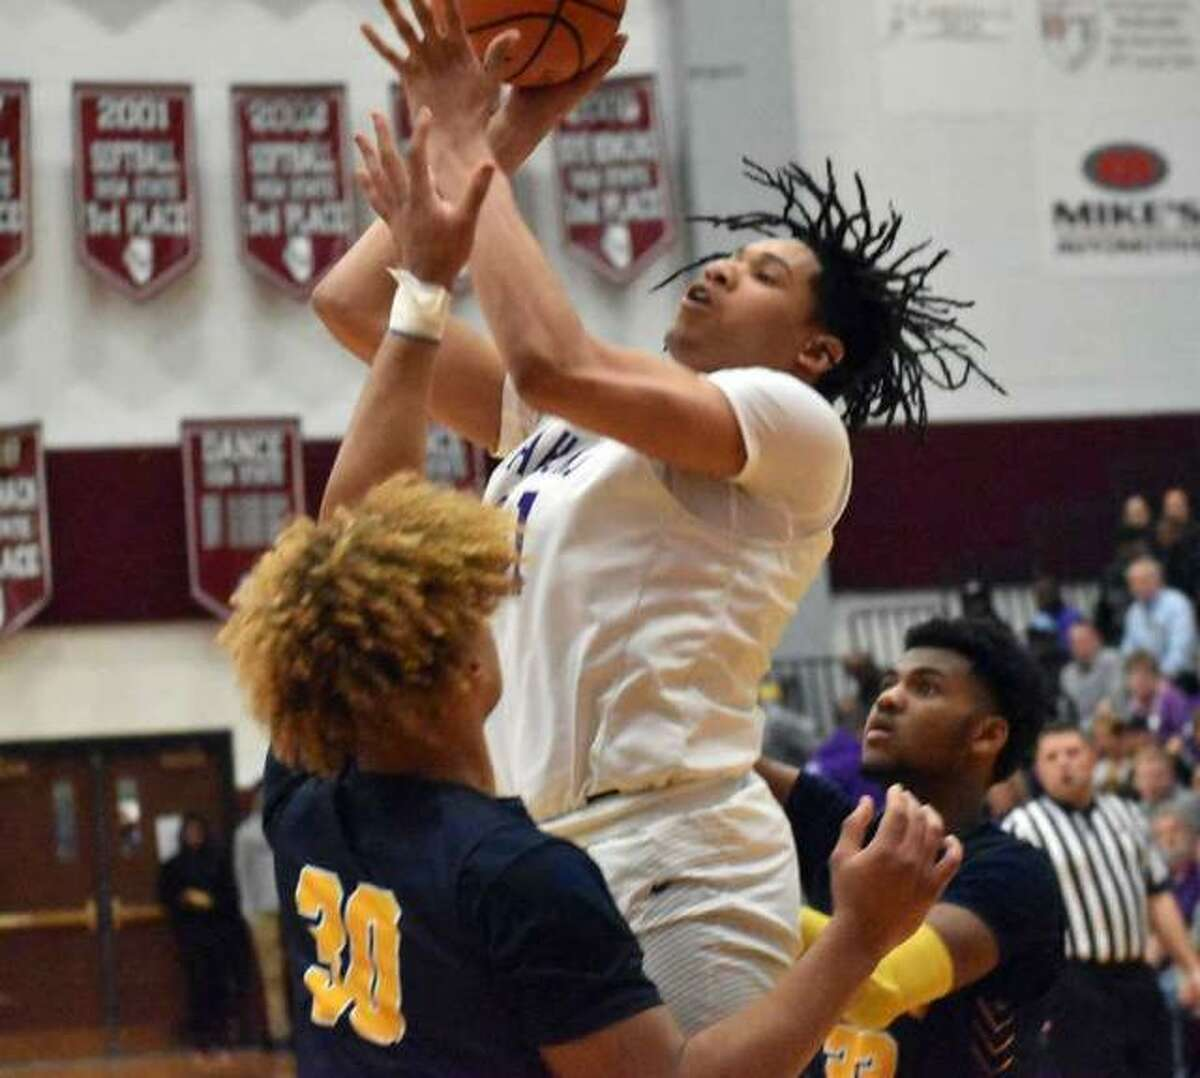 Collinsville senior forward Keydrian Jones hits a turnaround shot in the lane over O'Fallon's Dawson Algee in the first half of Tuesday's Class 4A sectional semifinat at Belleville West.